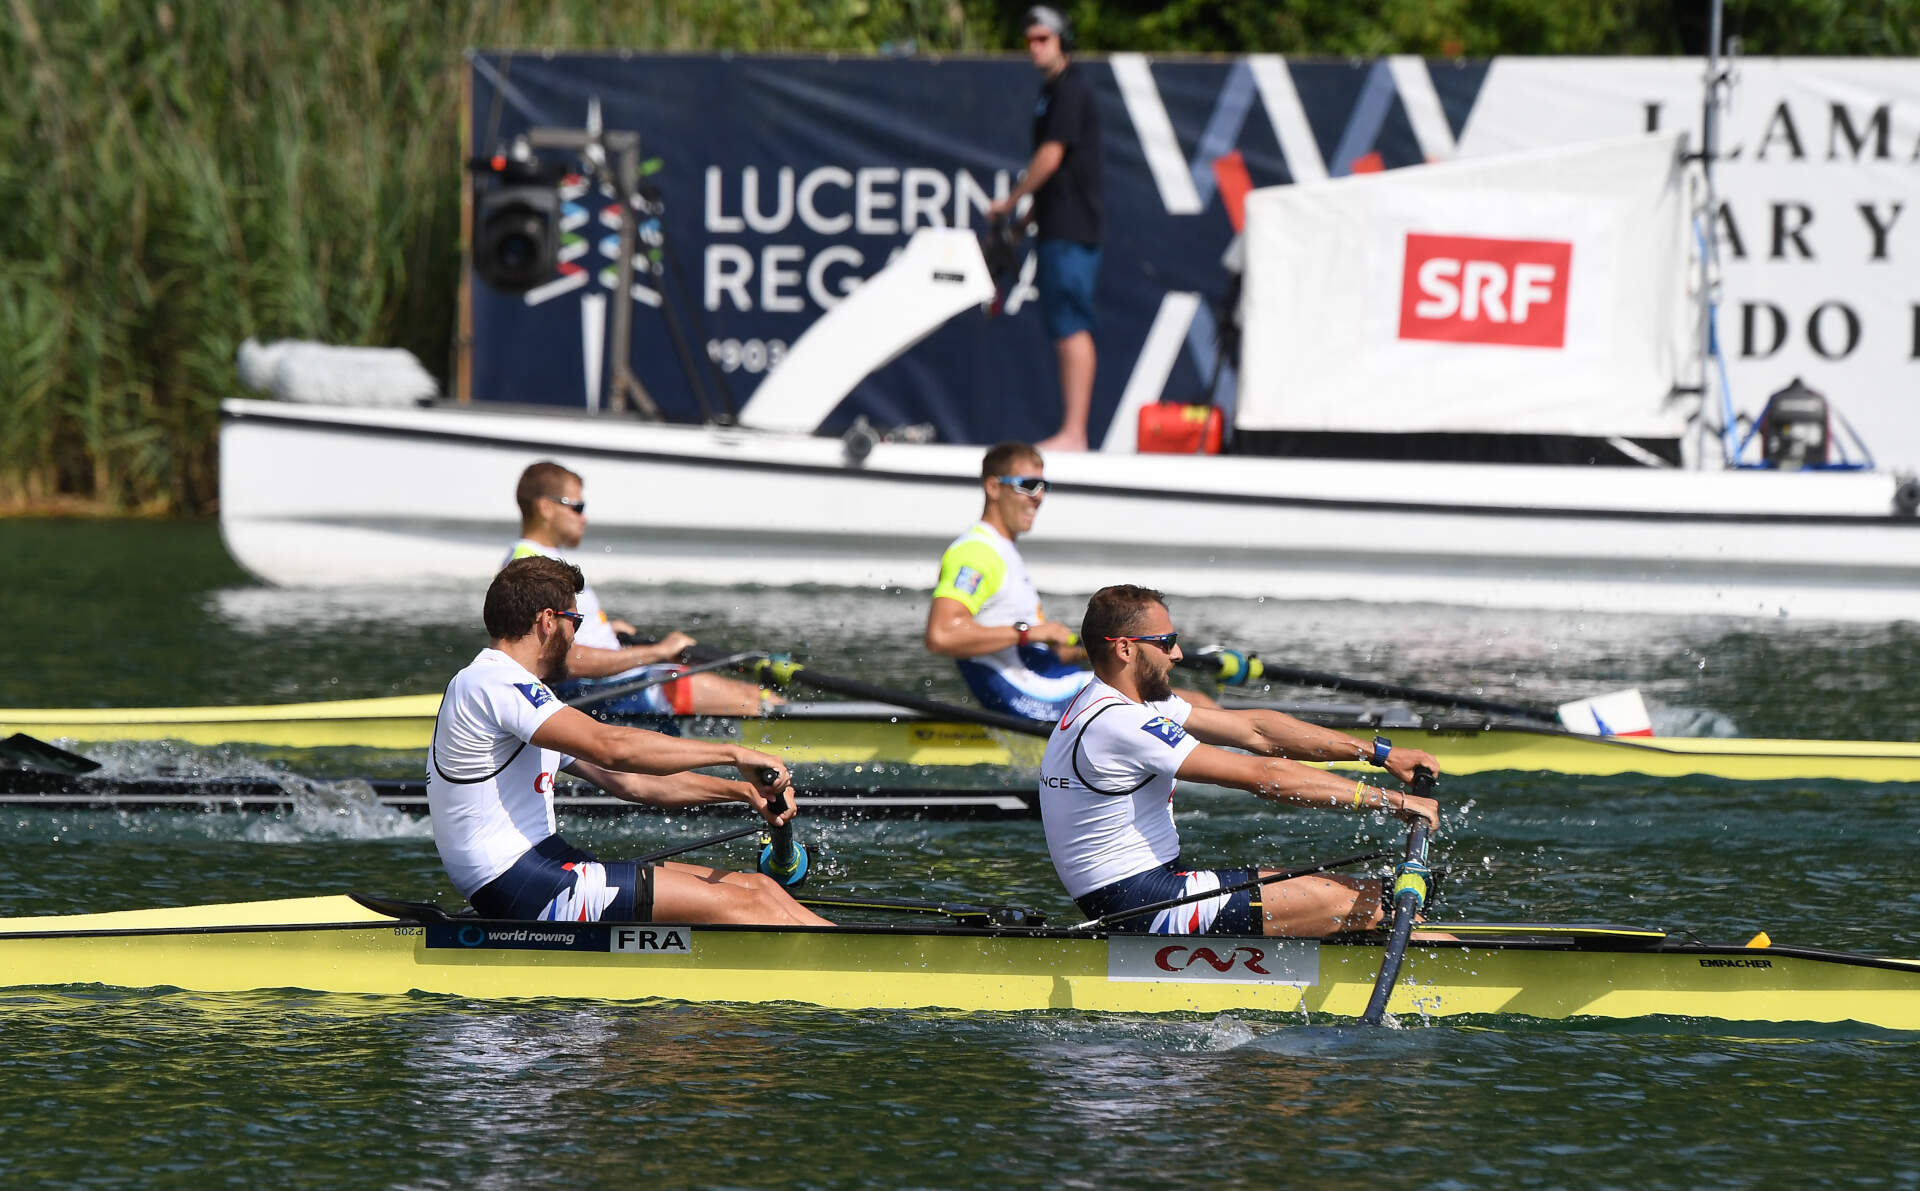 World Rowing Cup III Luzern M2 Silver FRA